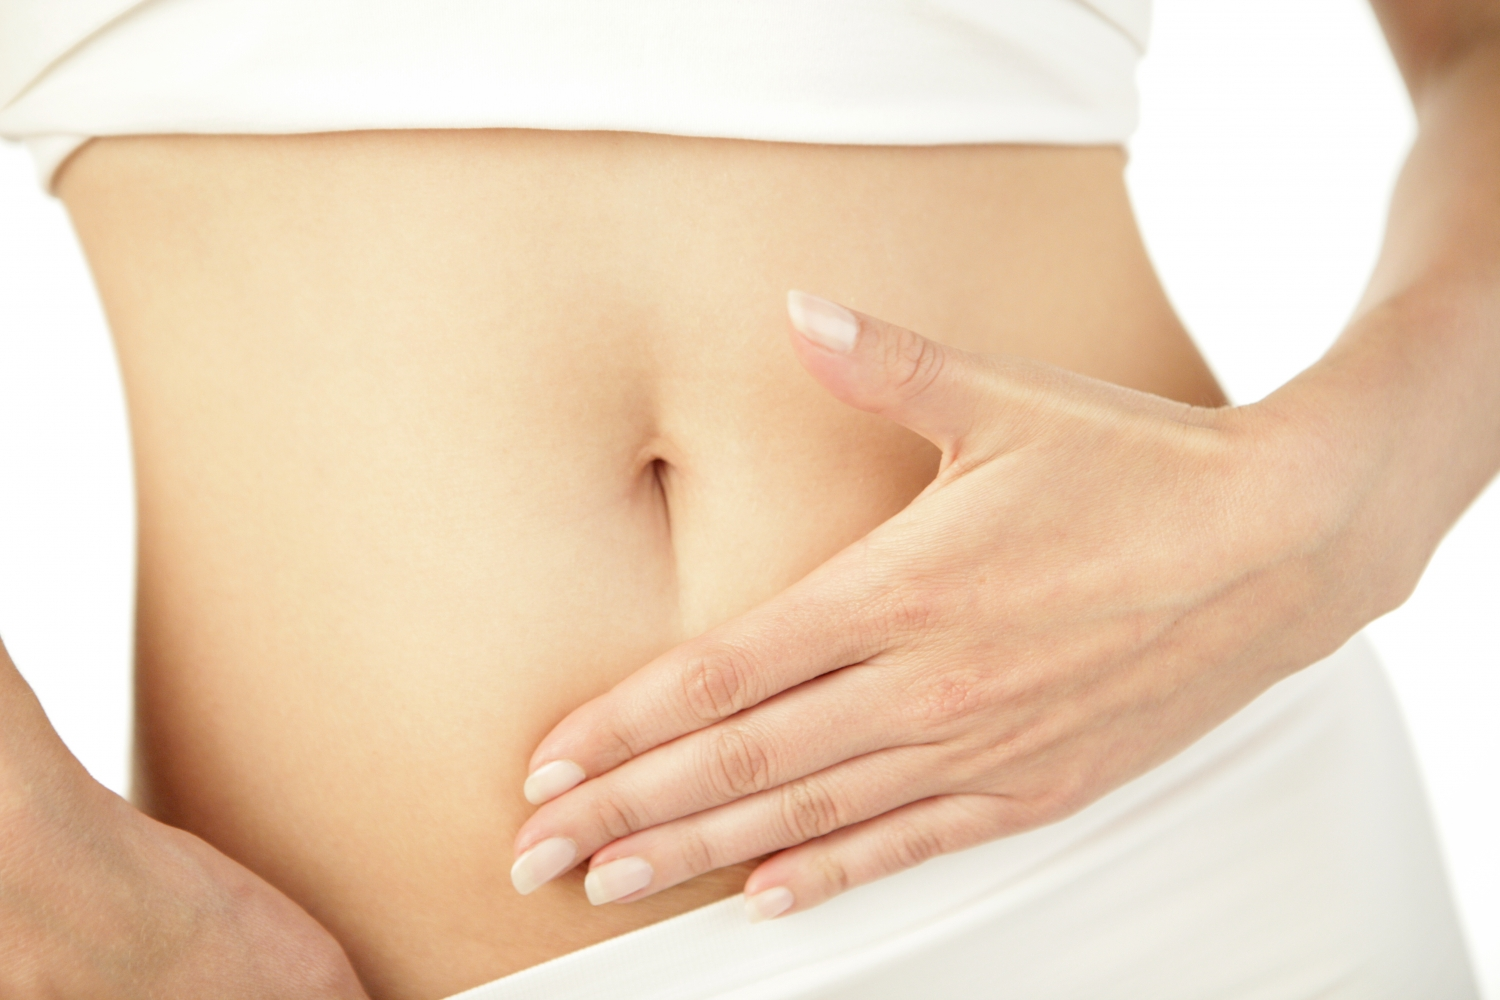 Liposuction for Fat Transfer